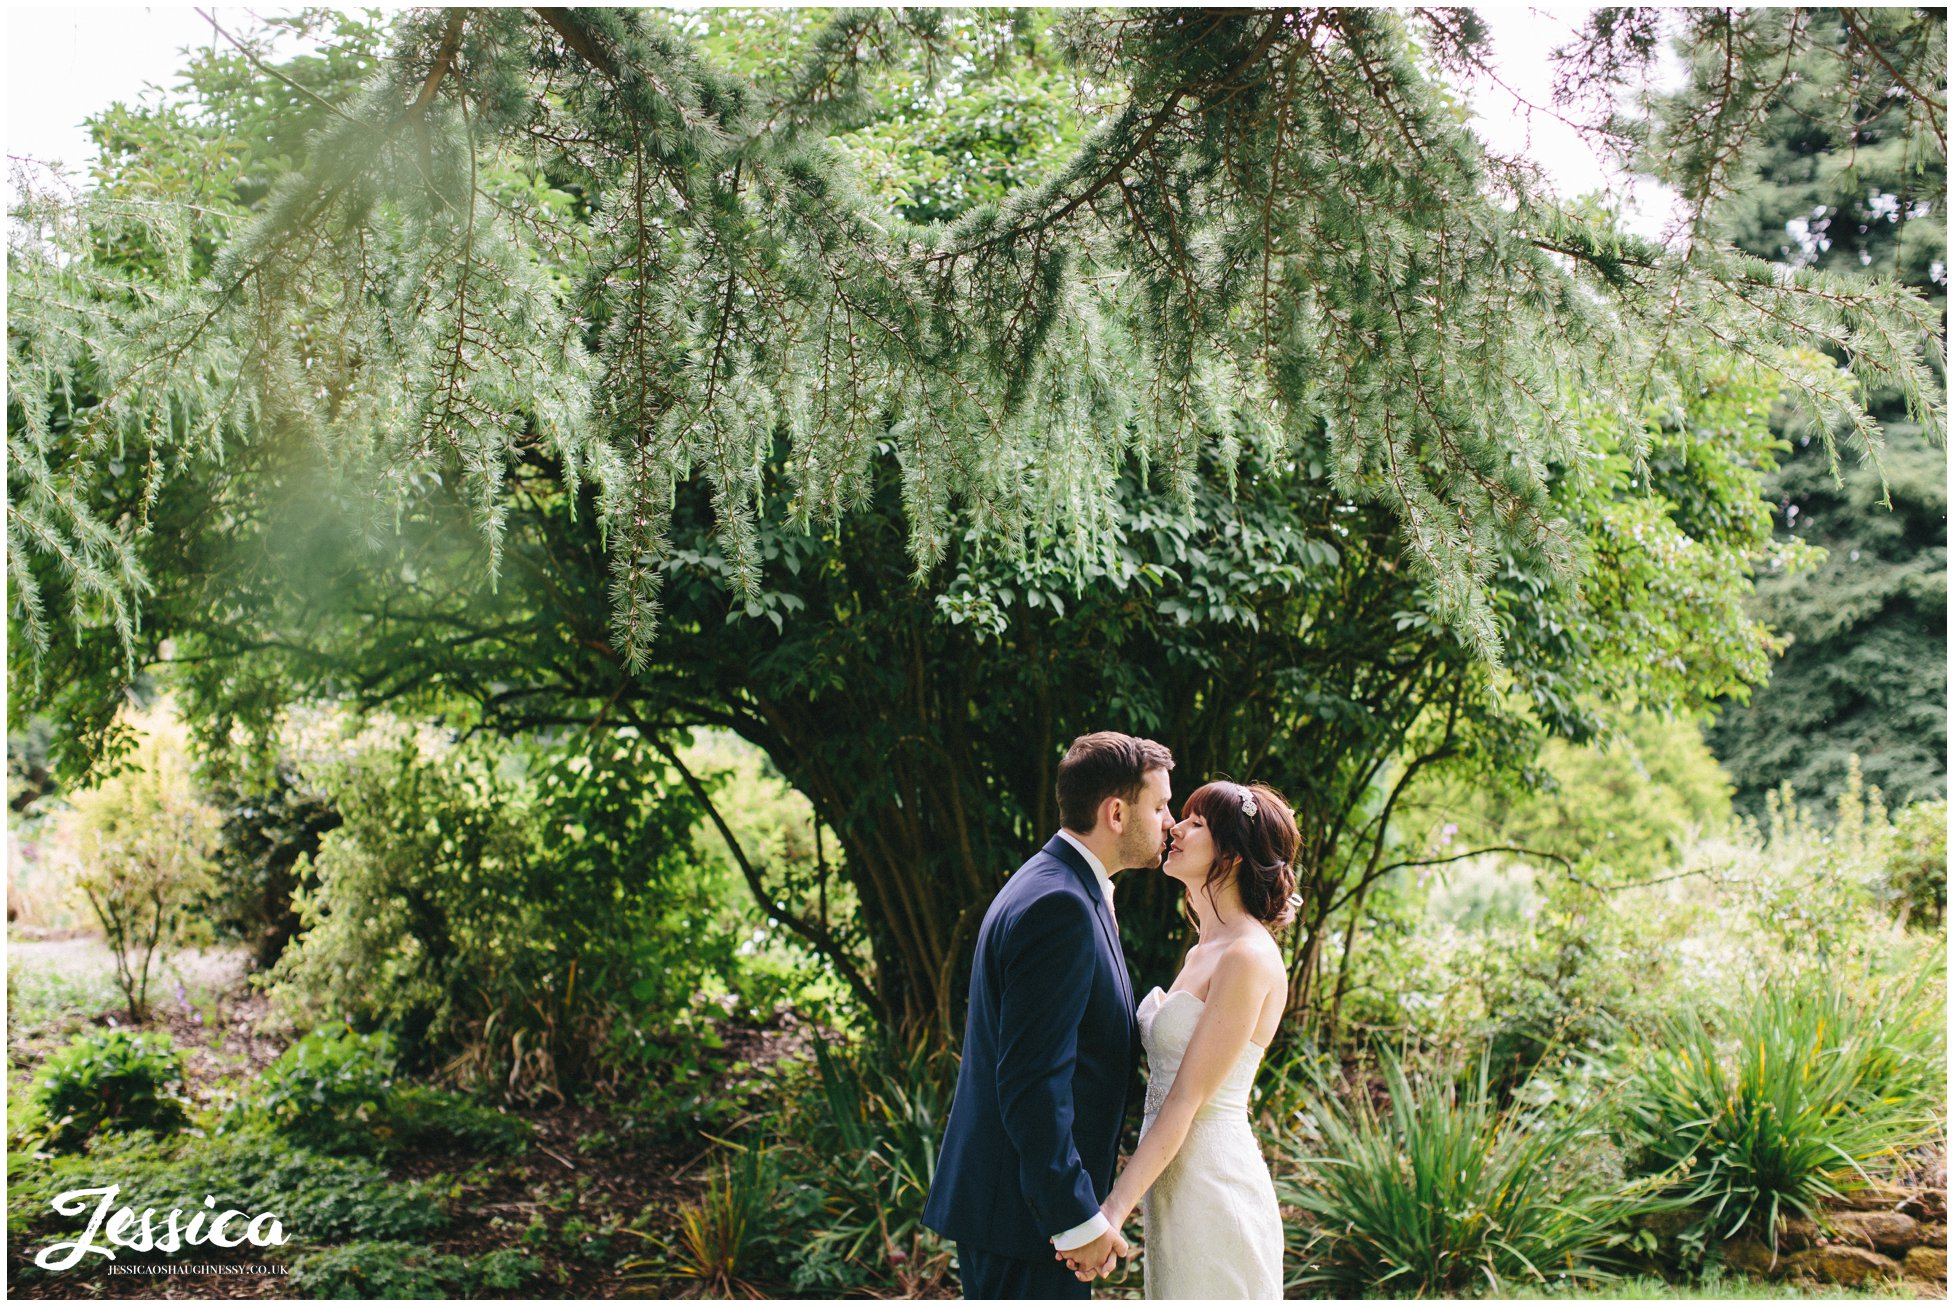 bride & groom kiss under the trees after their wedding ceremony at ness gardens